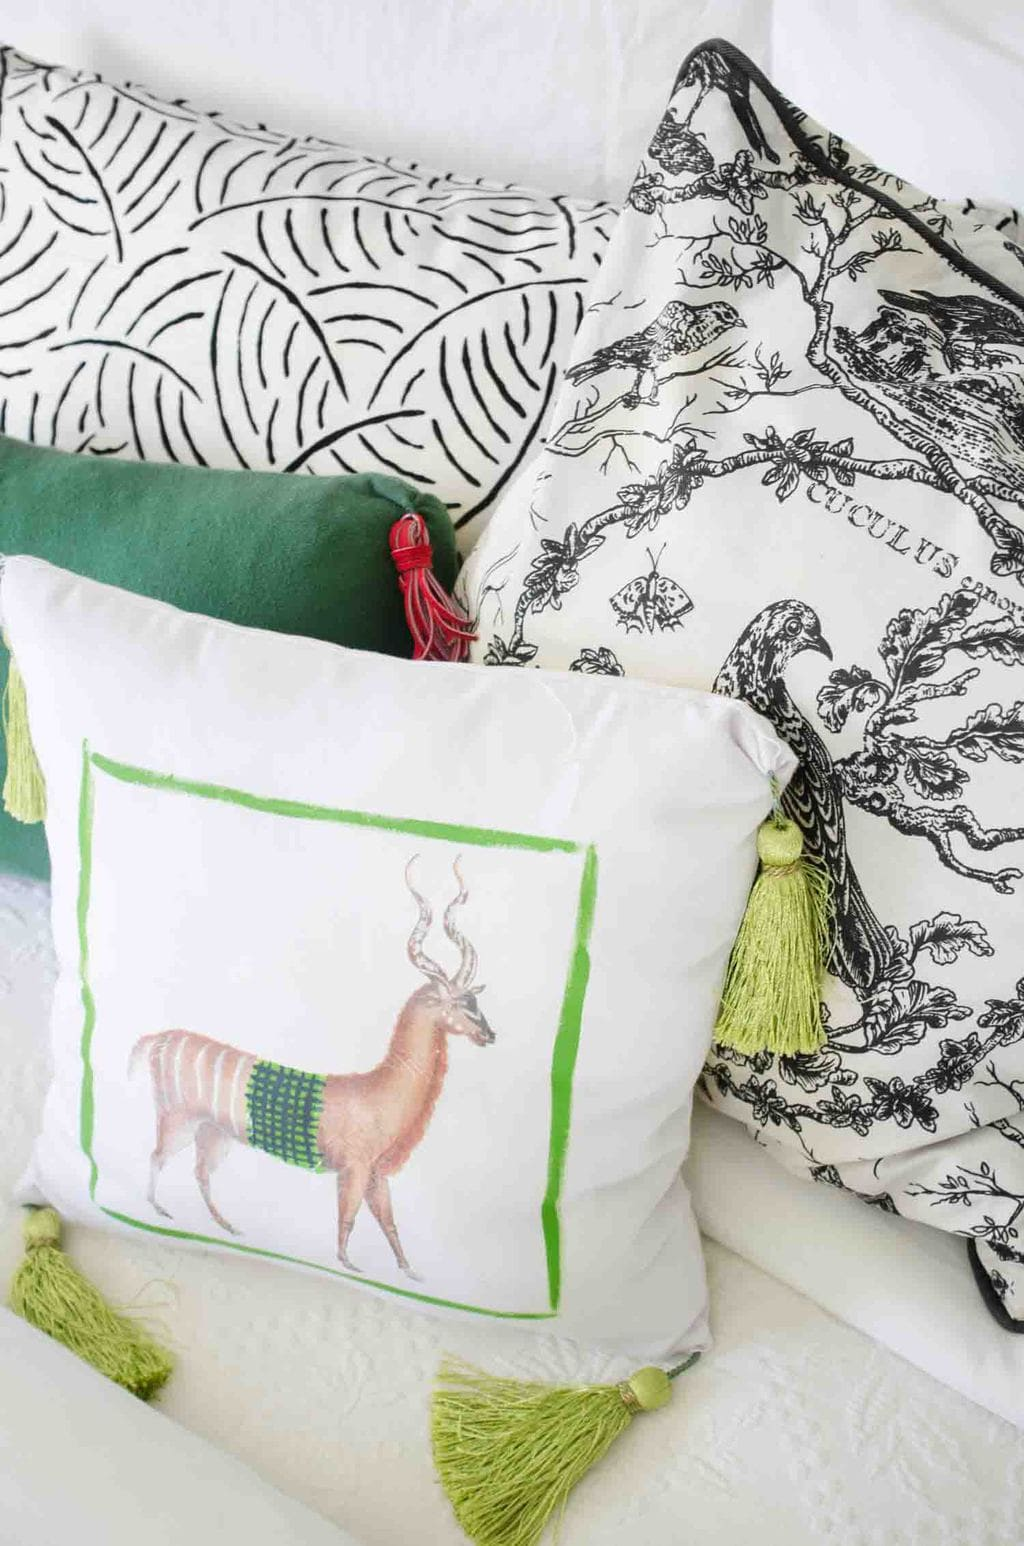 Eclectic bedroom pillow mix on the bed via @thouswellblog